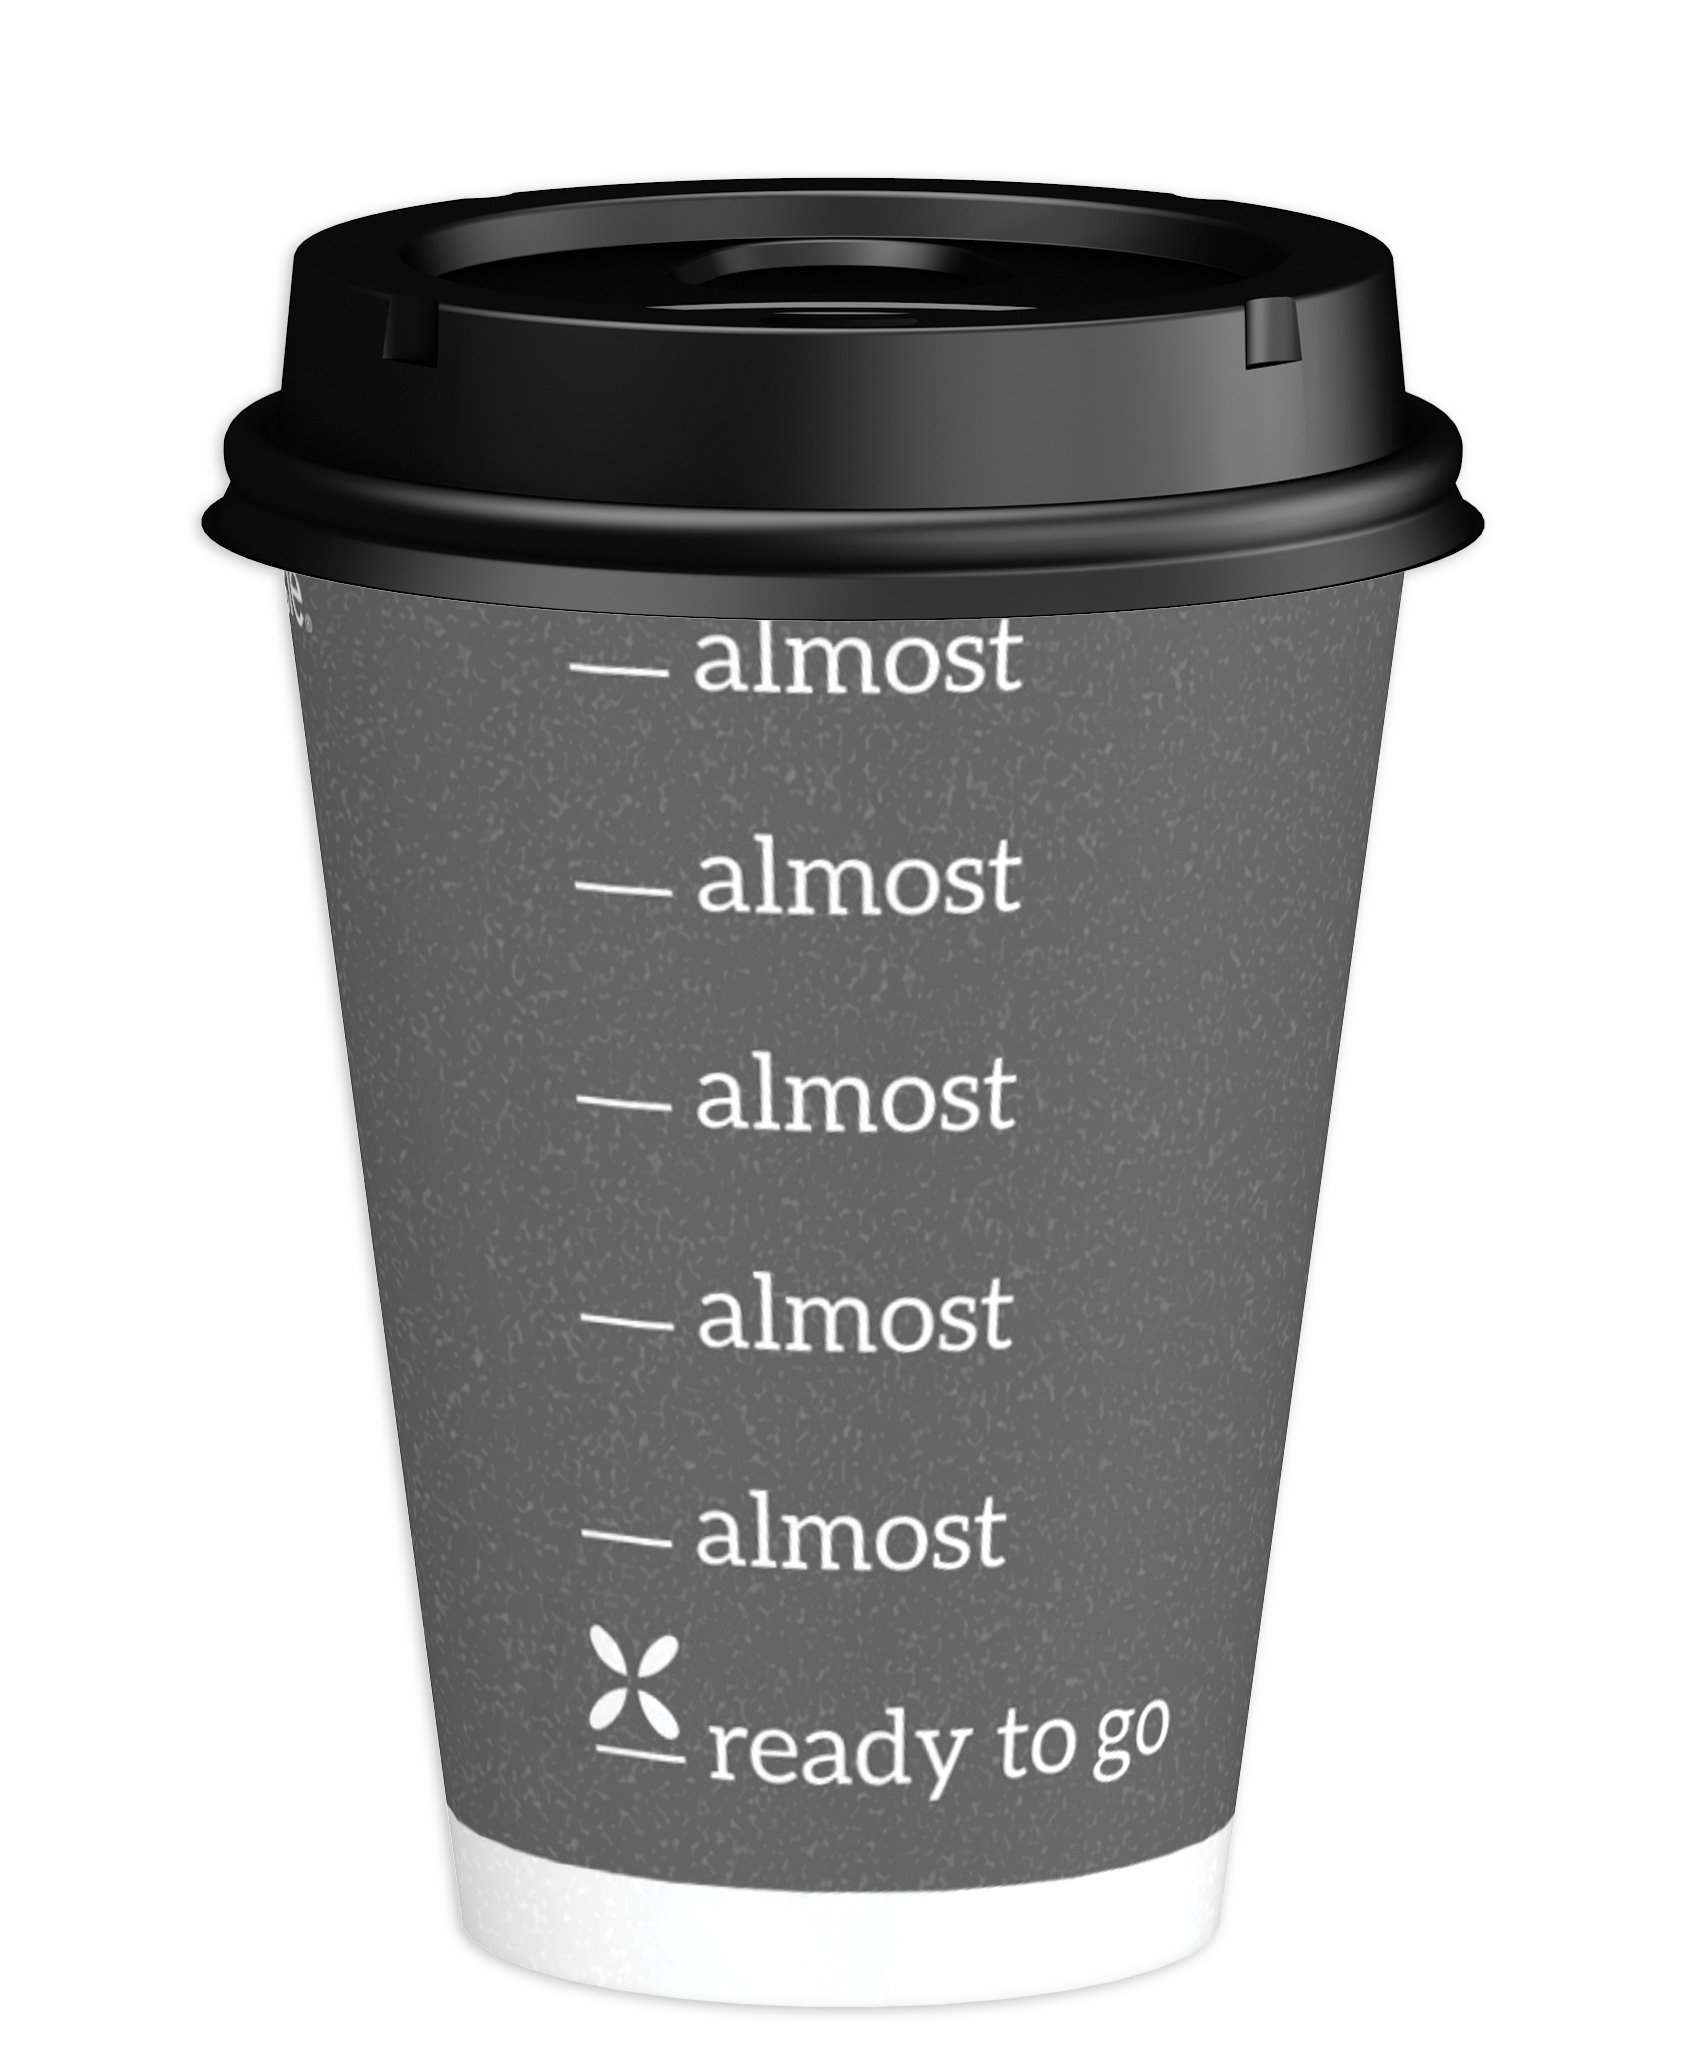 Dixie To Go Hot Beverage Cups & Lids, 12 Oz, 156 count, Assorted Designs, 6 Packs of 26 Count, Disposable Paper Coffee Cups & Lids by Dixie (Image #9)